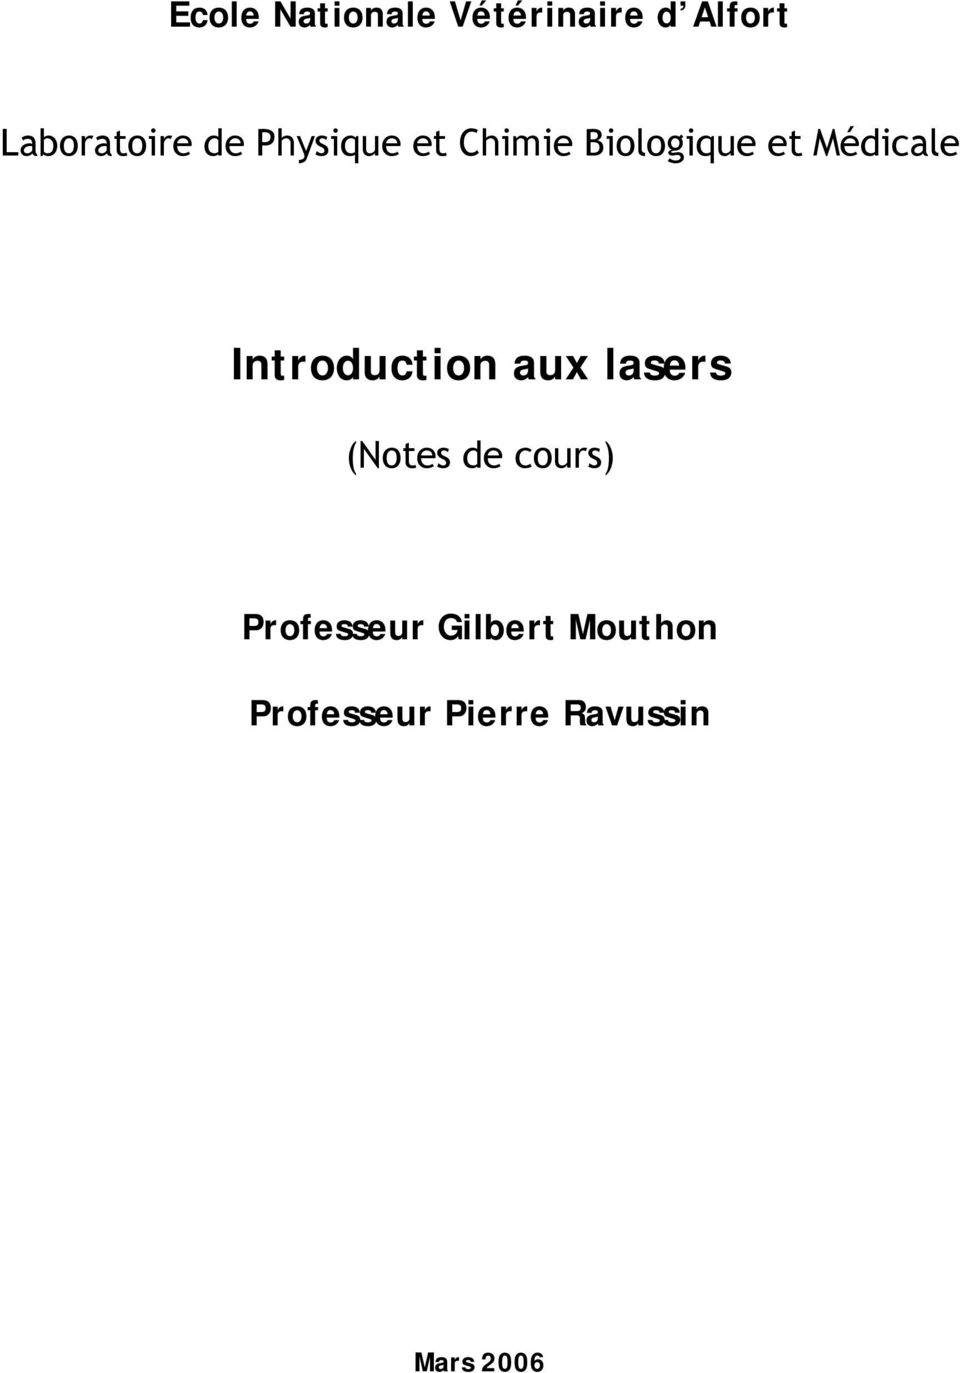 Introduction aux lasers (Notes de cours)